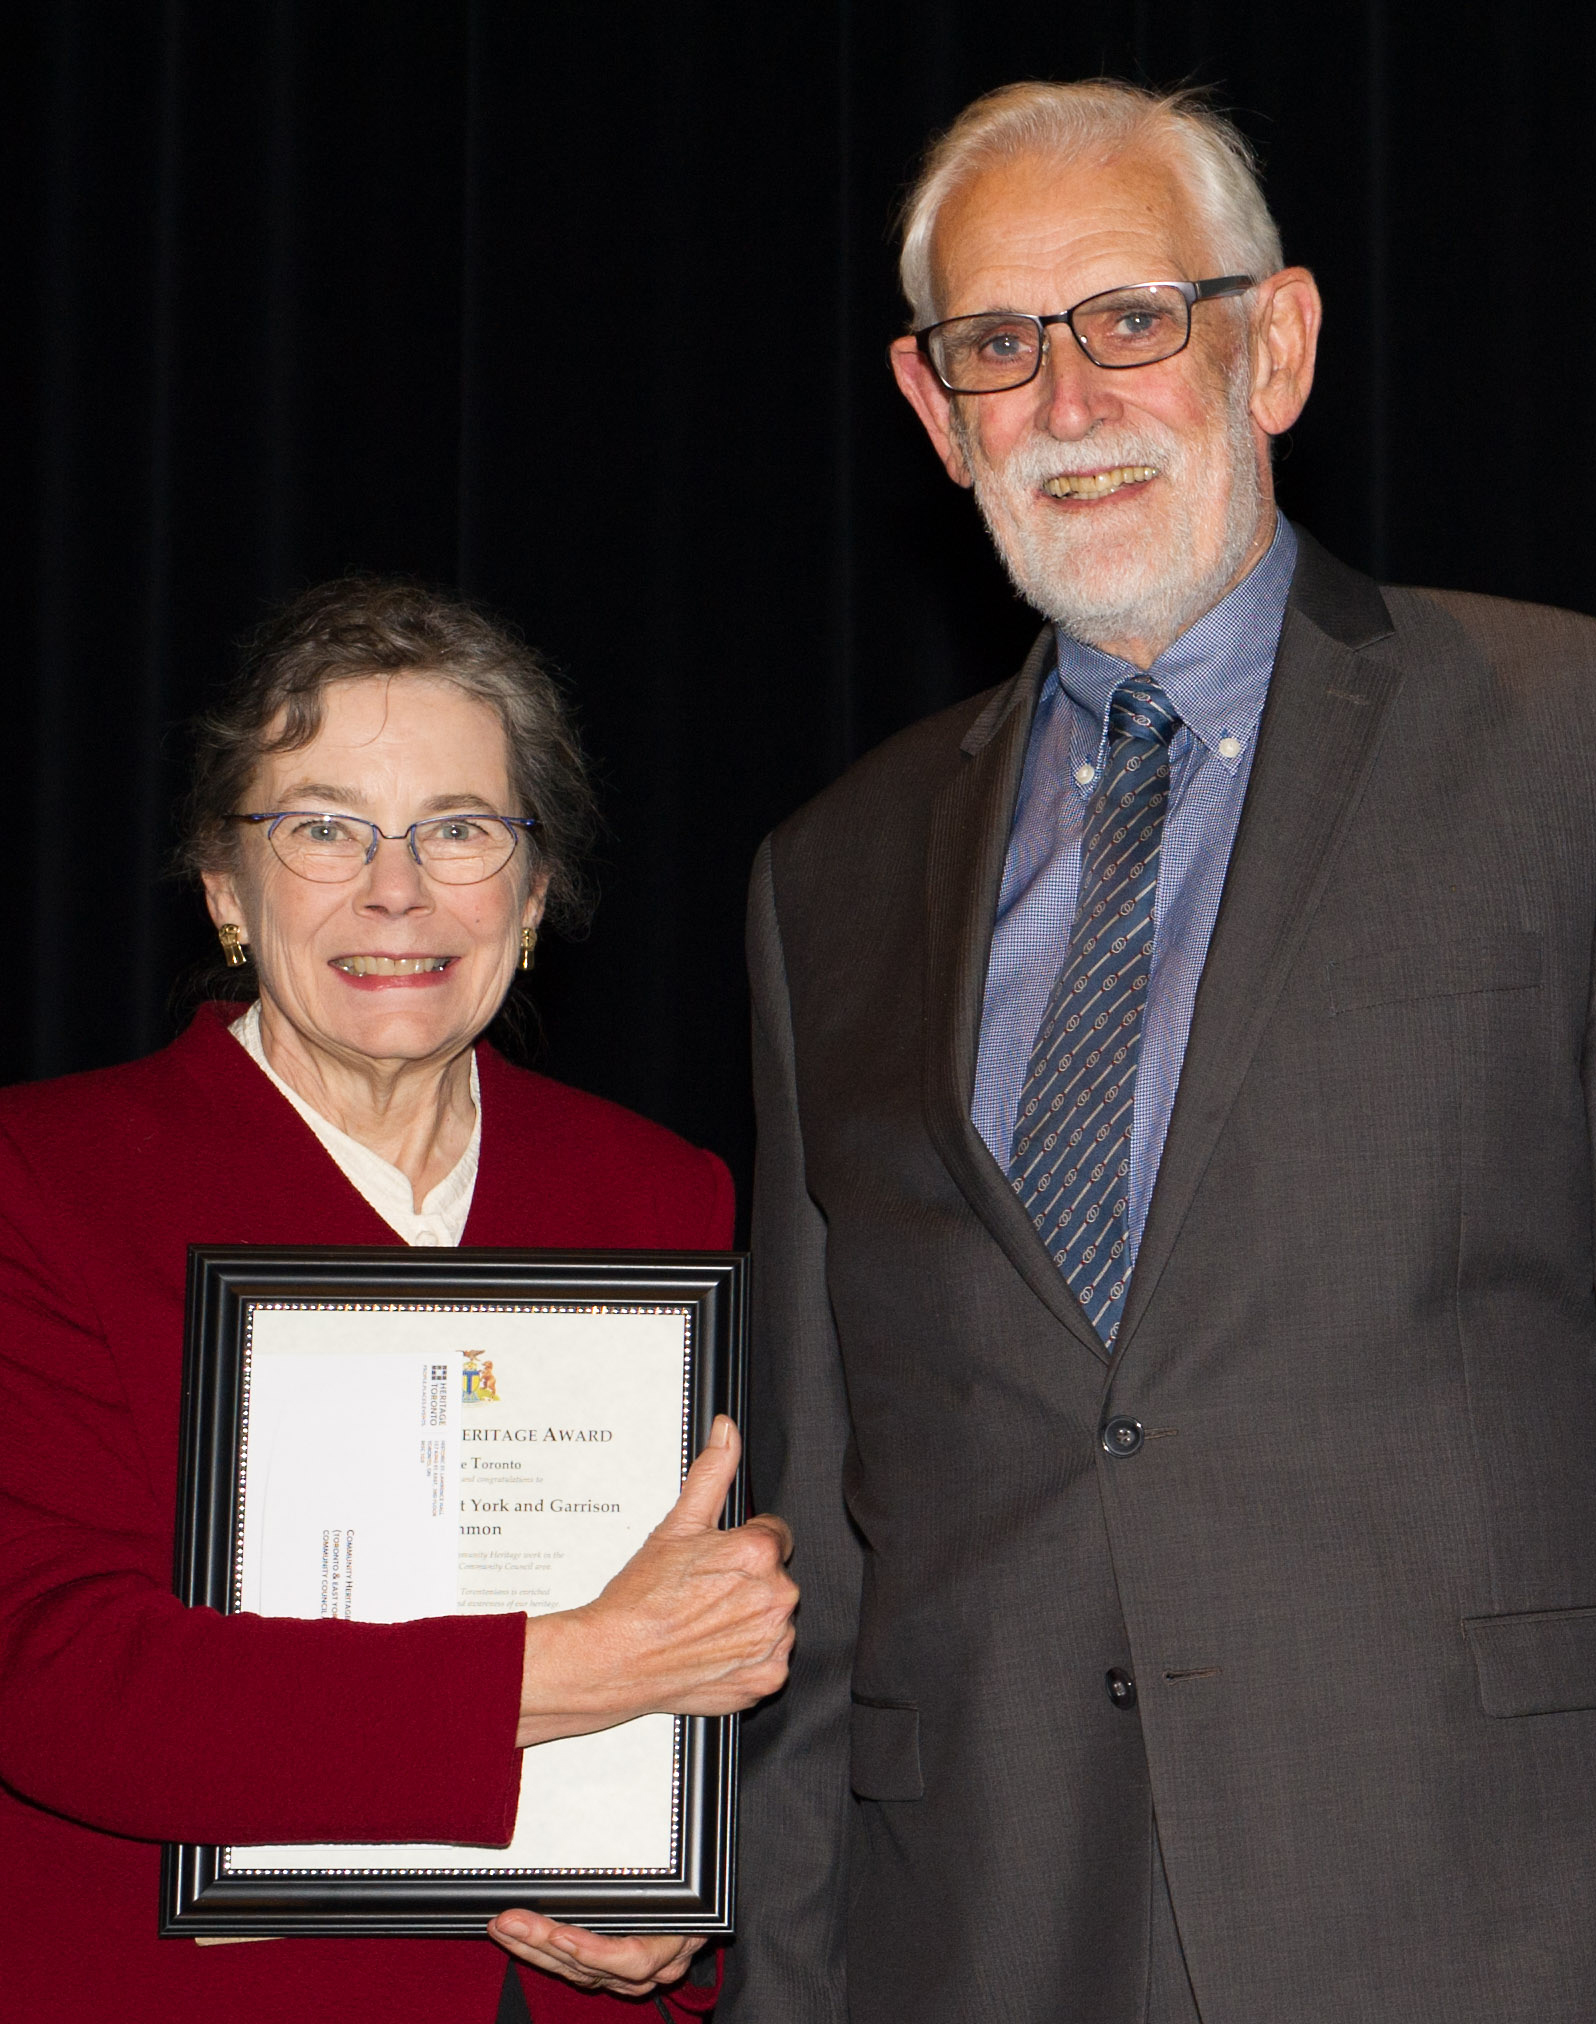 Patricia Fleming, editor of The Fife and Drum, and Joe Gill, past chair of the Friends of Fort York who founded the newsletter in 1998, took to the stage to receive our Community Heritage Award. Credit: Heritage Toronto